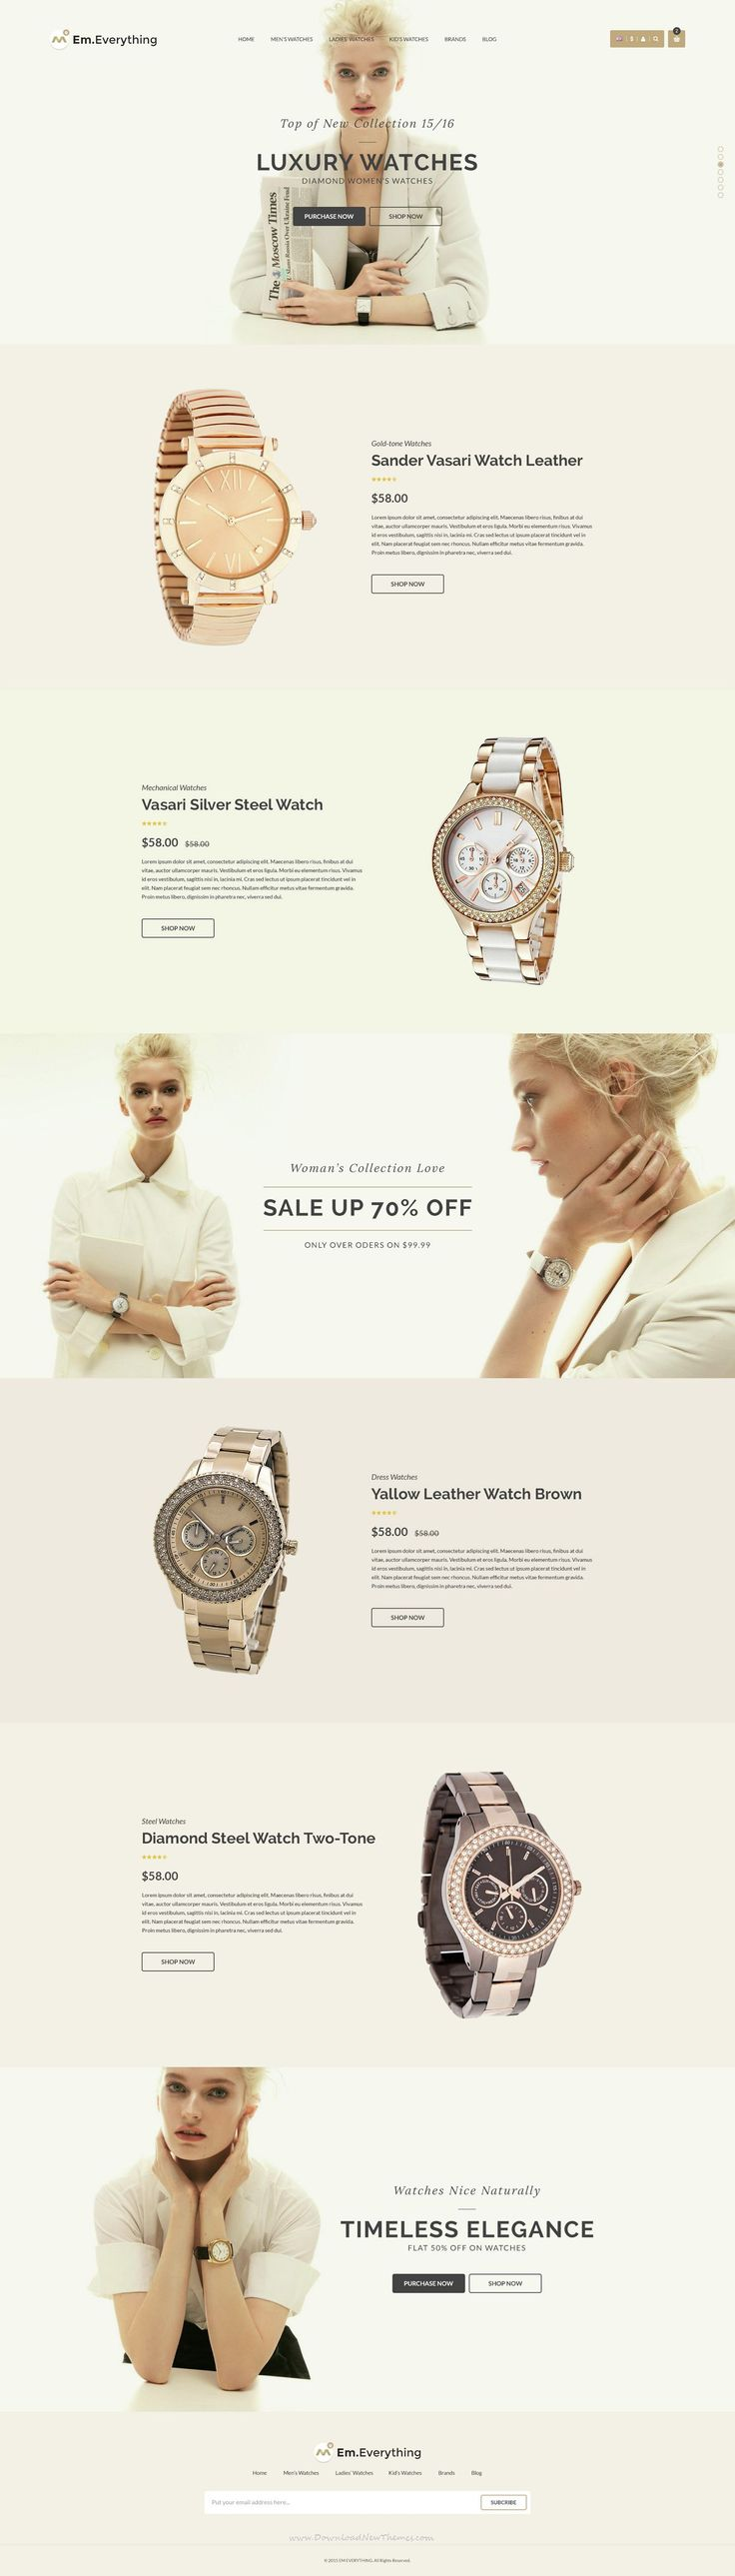 Everything - Multipurpose Responsive Prestashop Theme for Marvelous Luxury #Watches Online eCommerce #website design - Luxury Beauty - amzn.to/2hZFa13 luxury beauty products - http://amzn.to/2hu7dbB